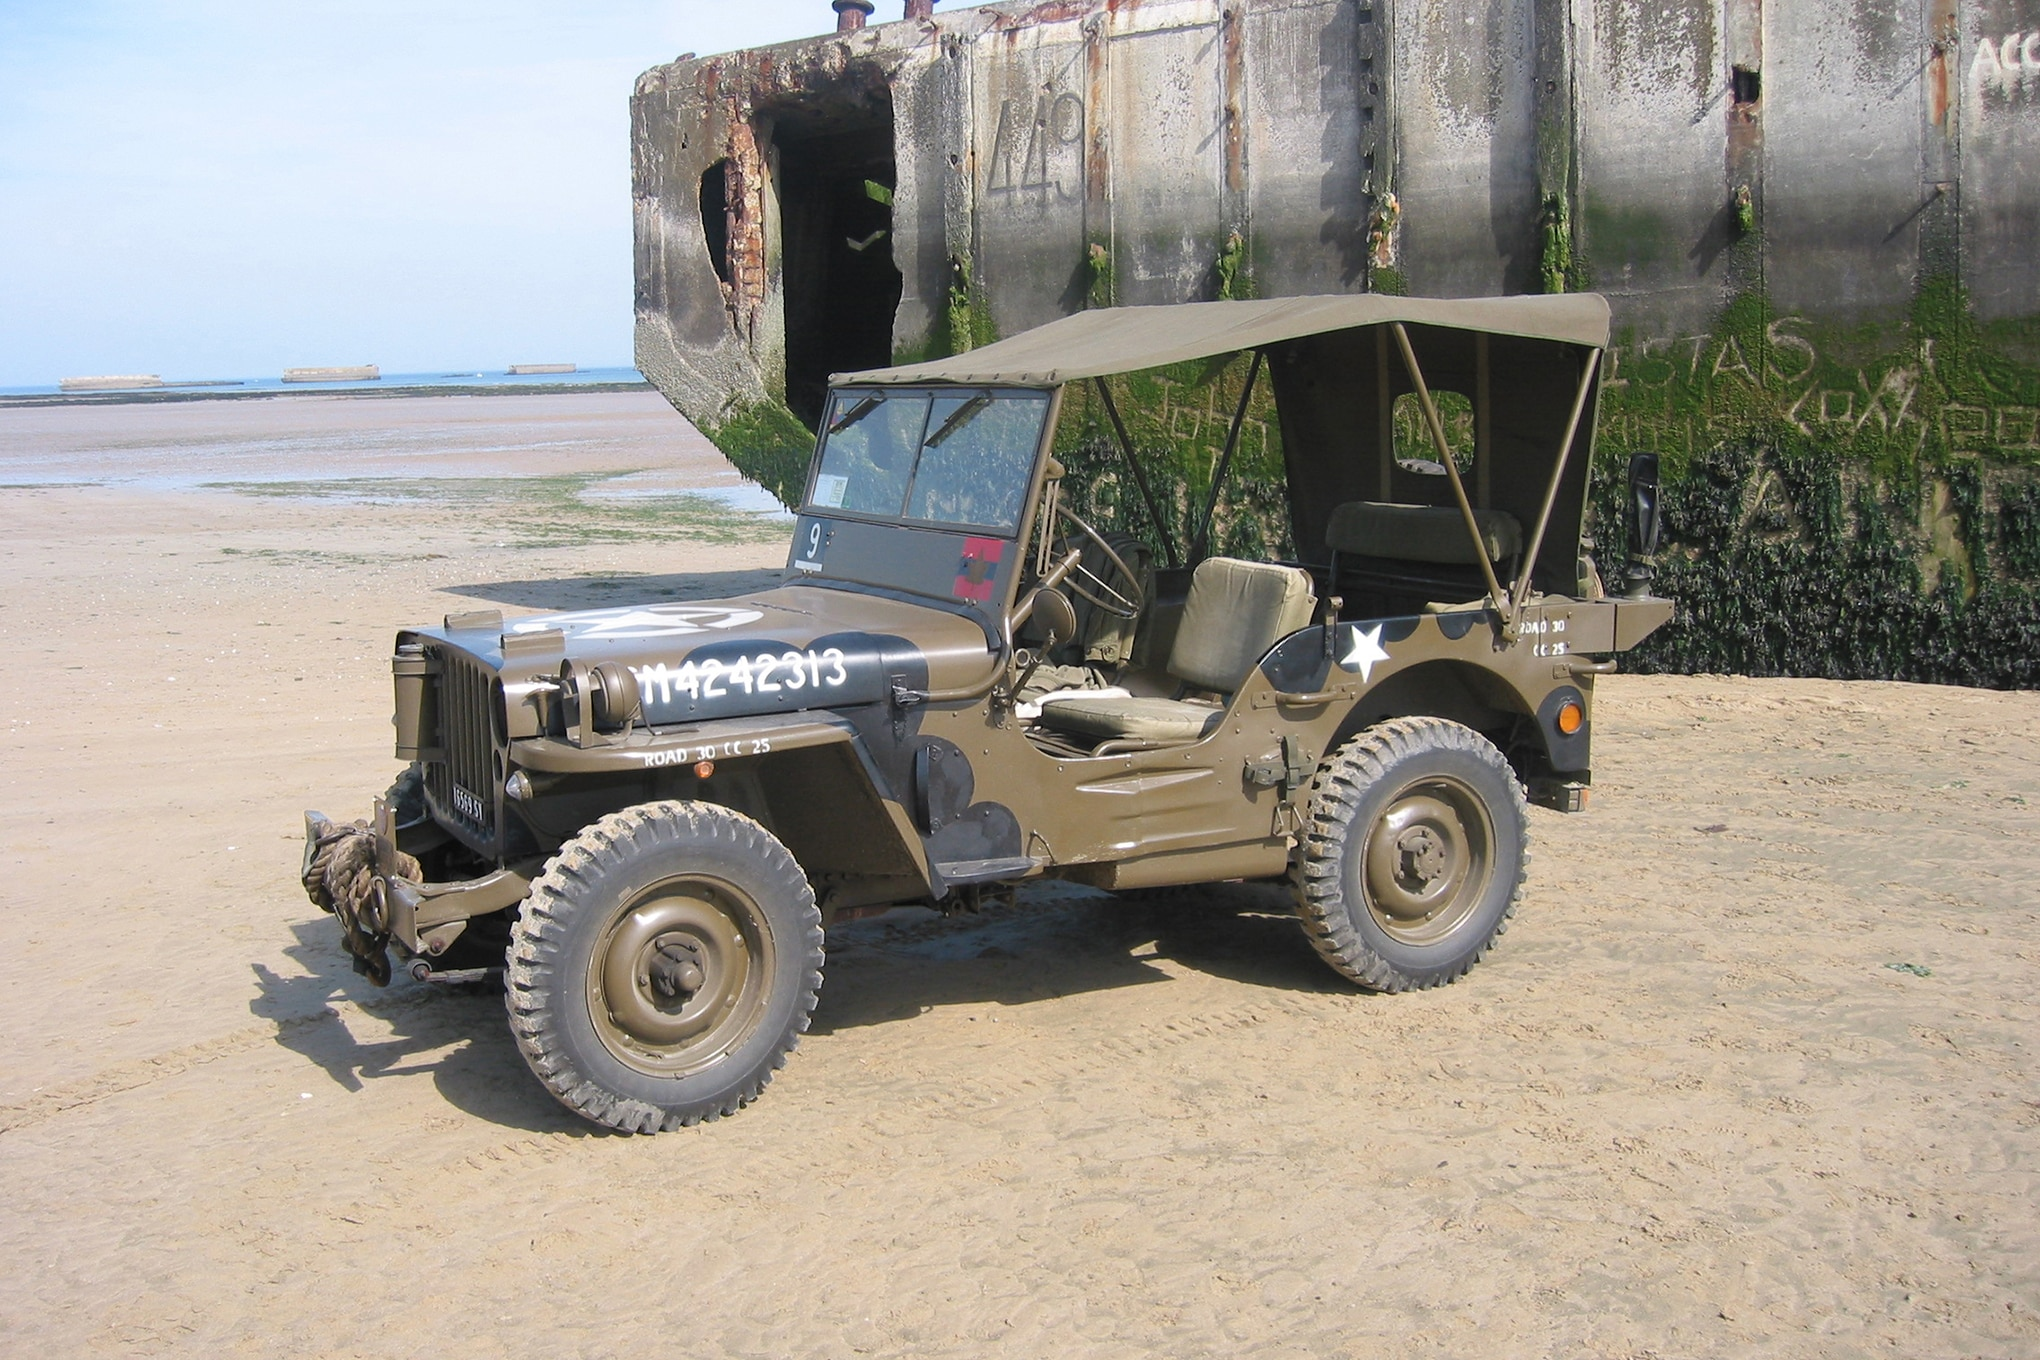 016 jeep 1943 normandy